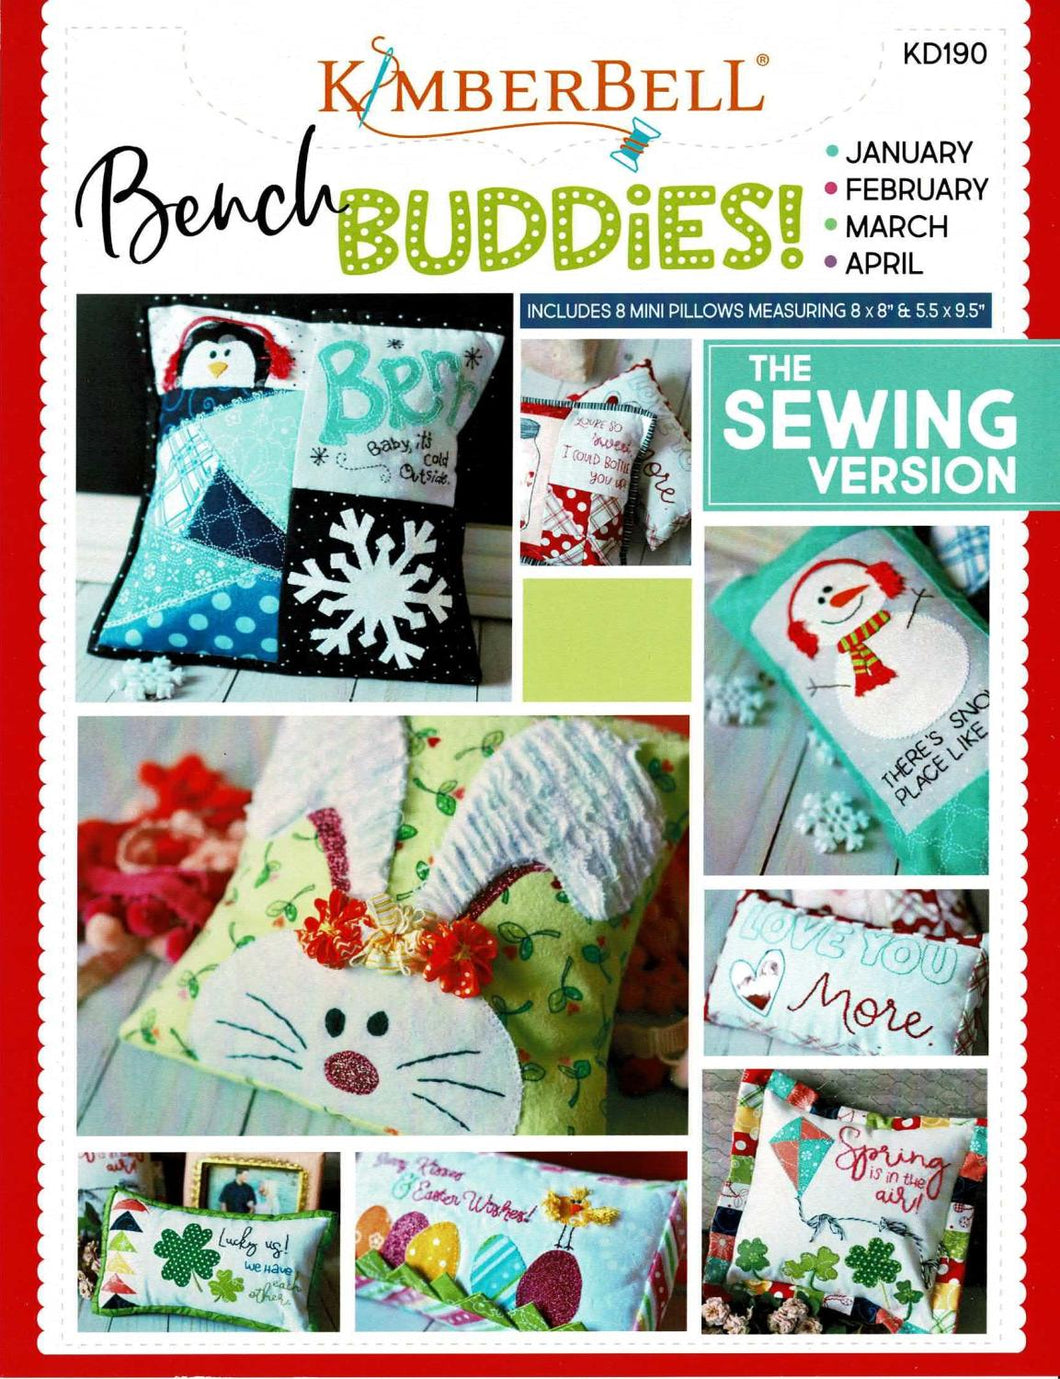 Kimberbell Bench Buddies; January, February, March & April - Sewing Version